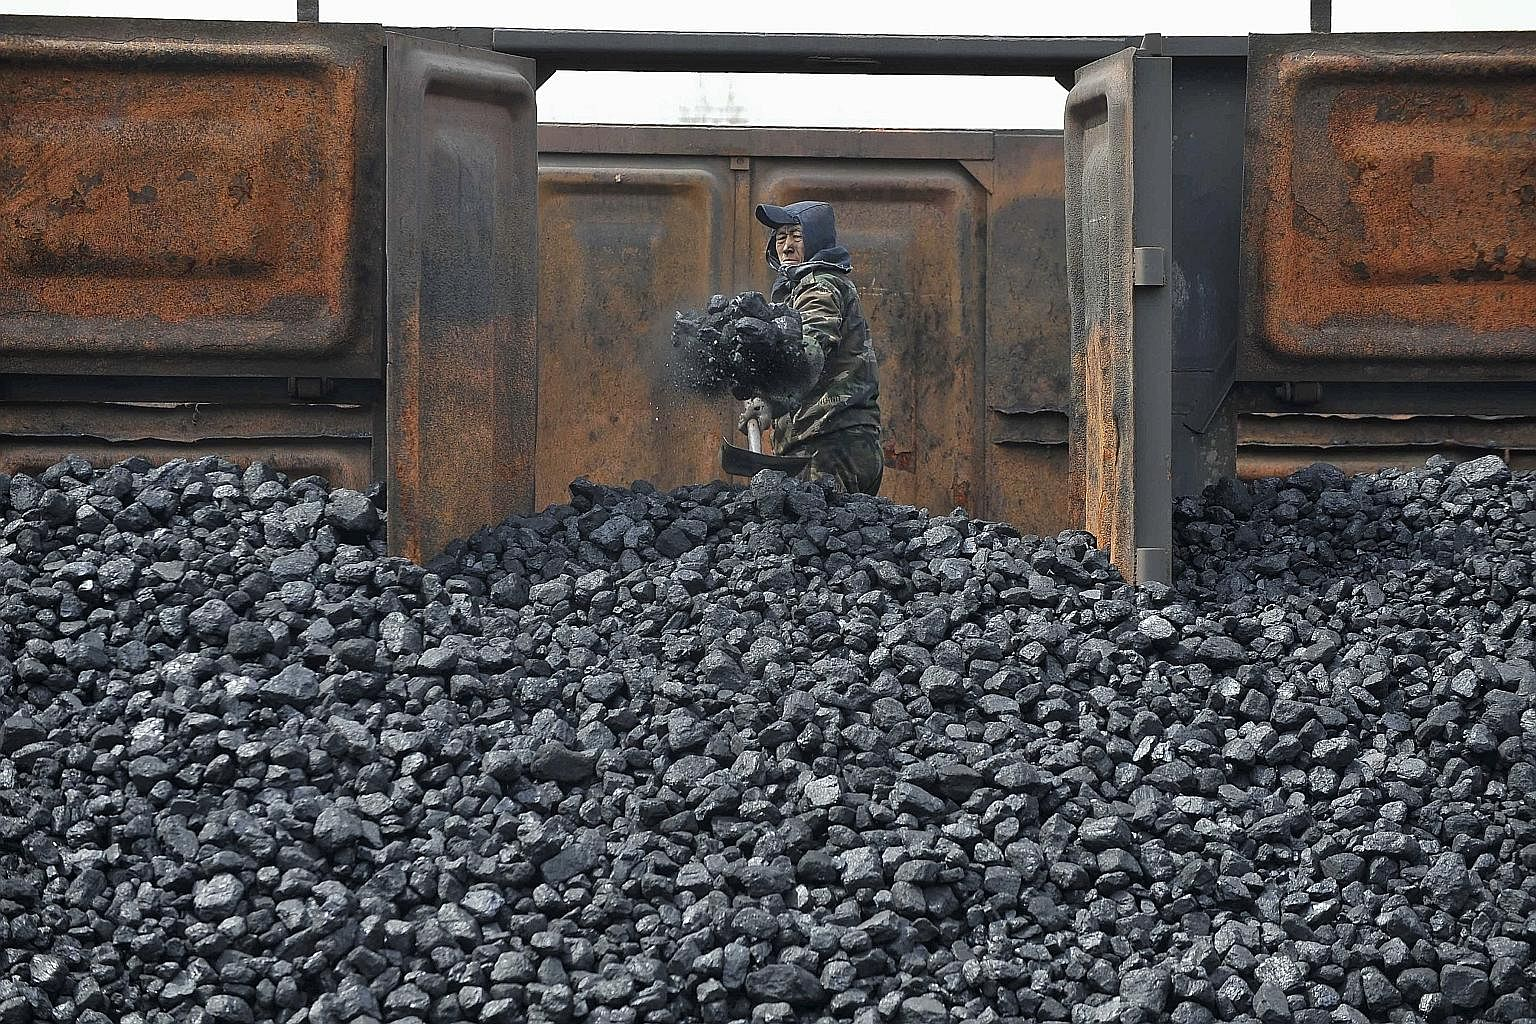 A worker unloading coal at a storage site along a railway station in Shenyang, Liaoning province, in China. Faced with choking air pollution, China is starting to shift away from coal-fired power plants and is also forcing dirty industries to clean u